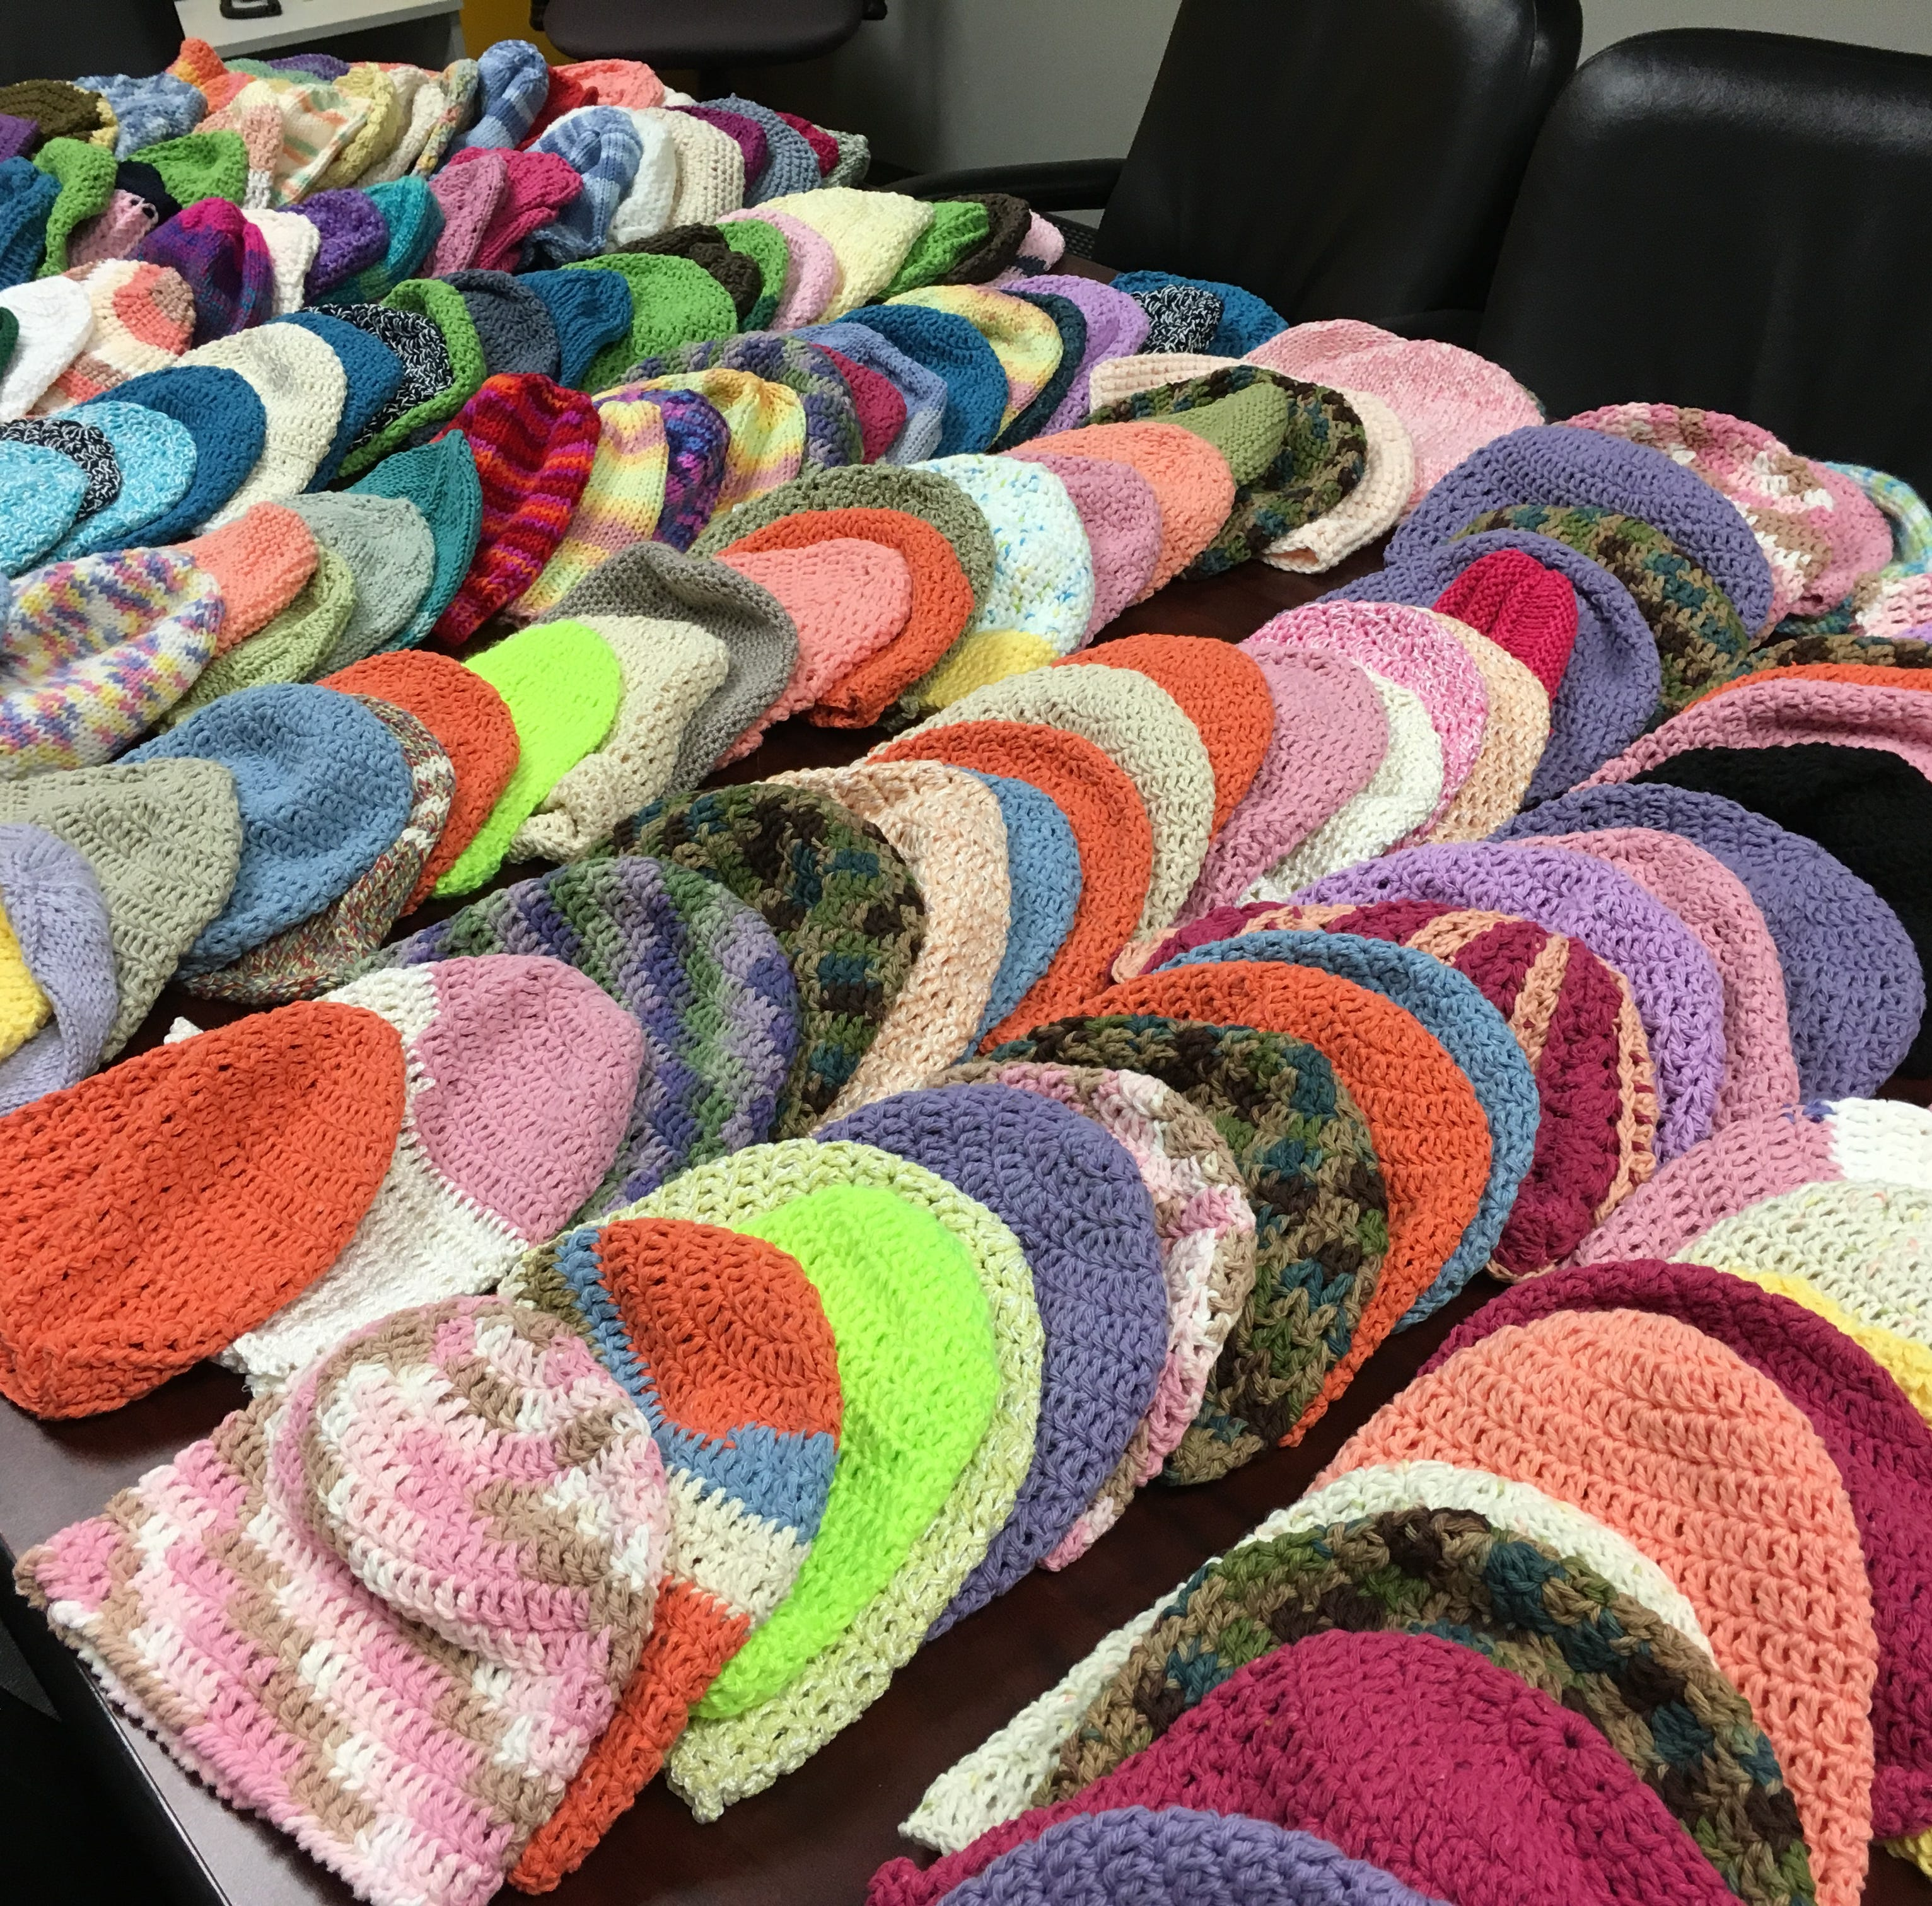 Delivering 300 hats in one day to health and service organizations in Central Jersey